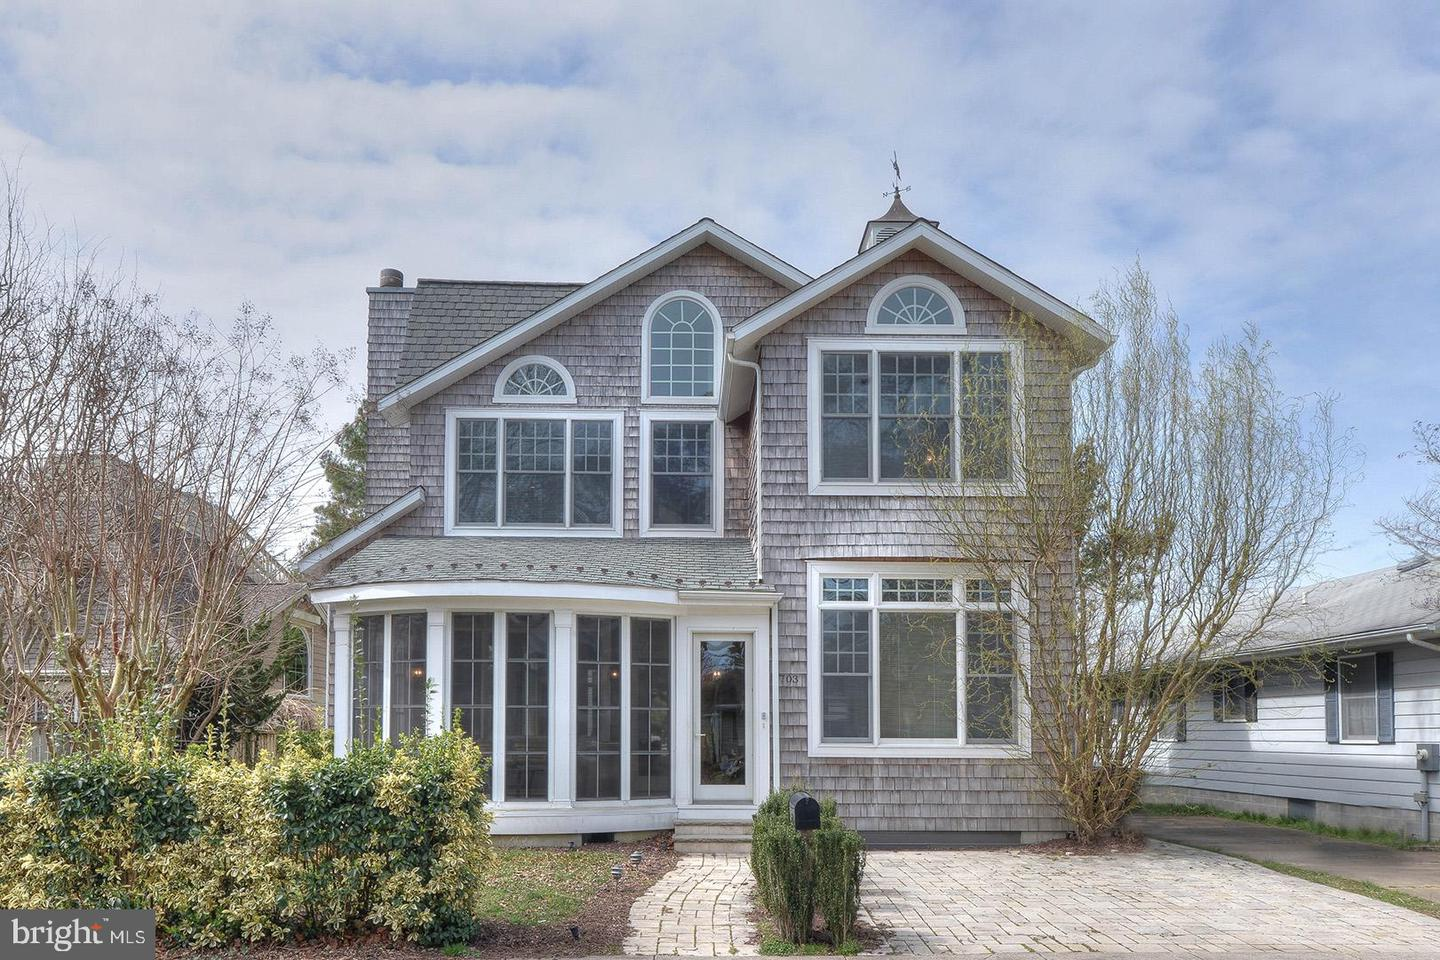 DESU158342-304068949507-2020-08-14-15-16-58 Sold Listings - Rehoboth Beach Real Estate - Bryce Lingo and Shaun Tull REALTORS, Rehoboth Beach, Delaware